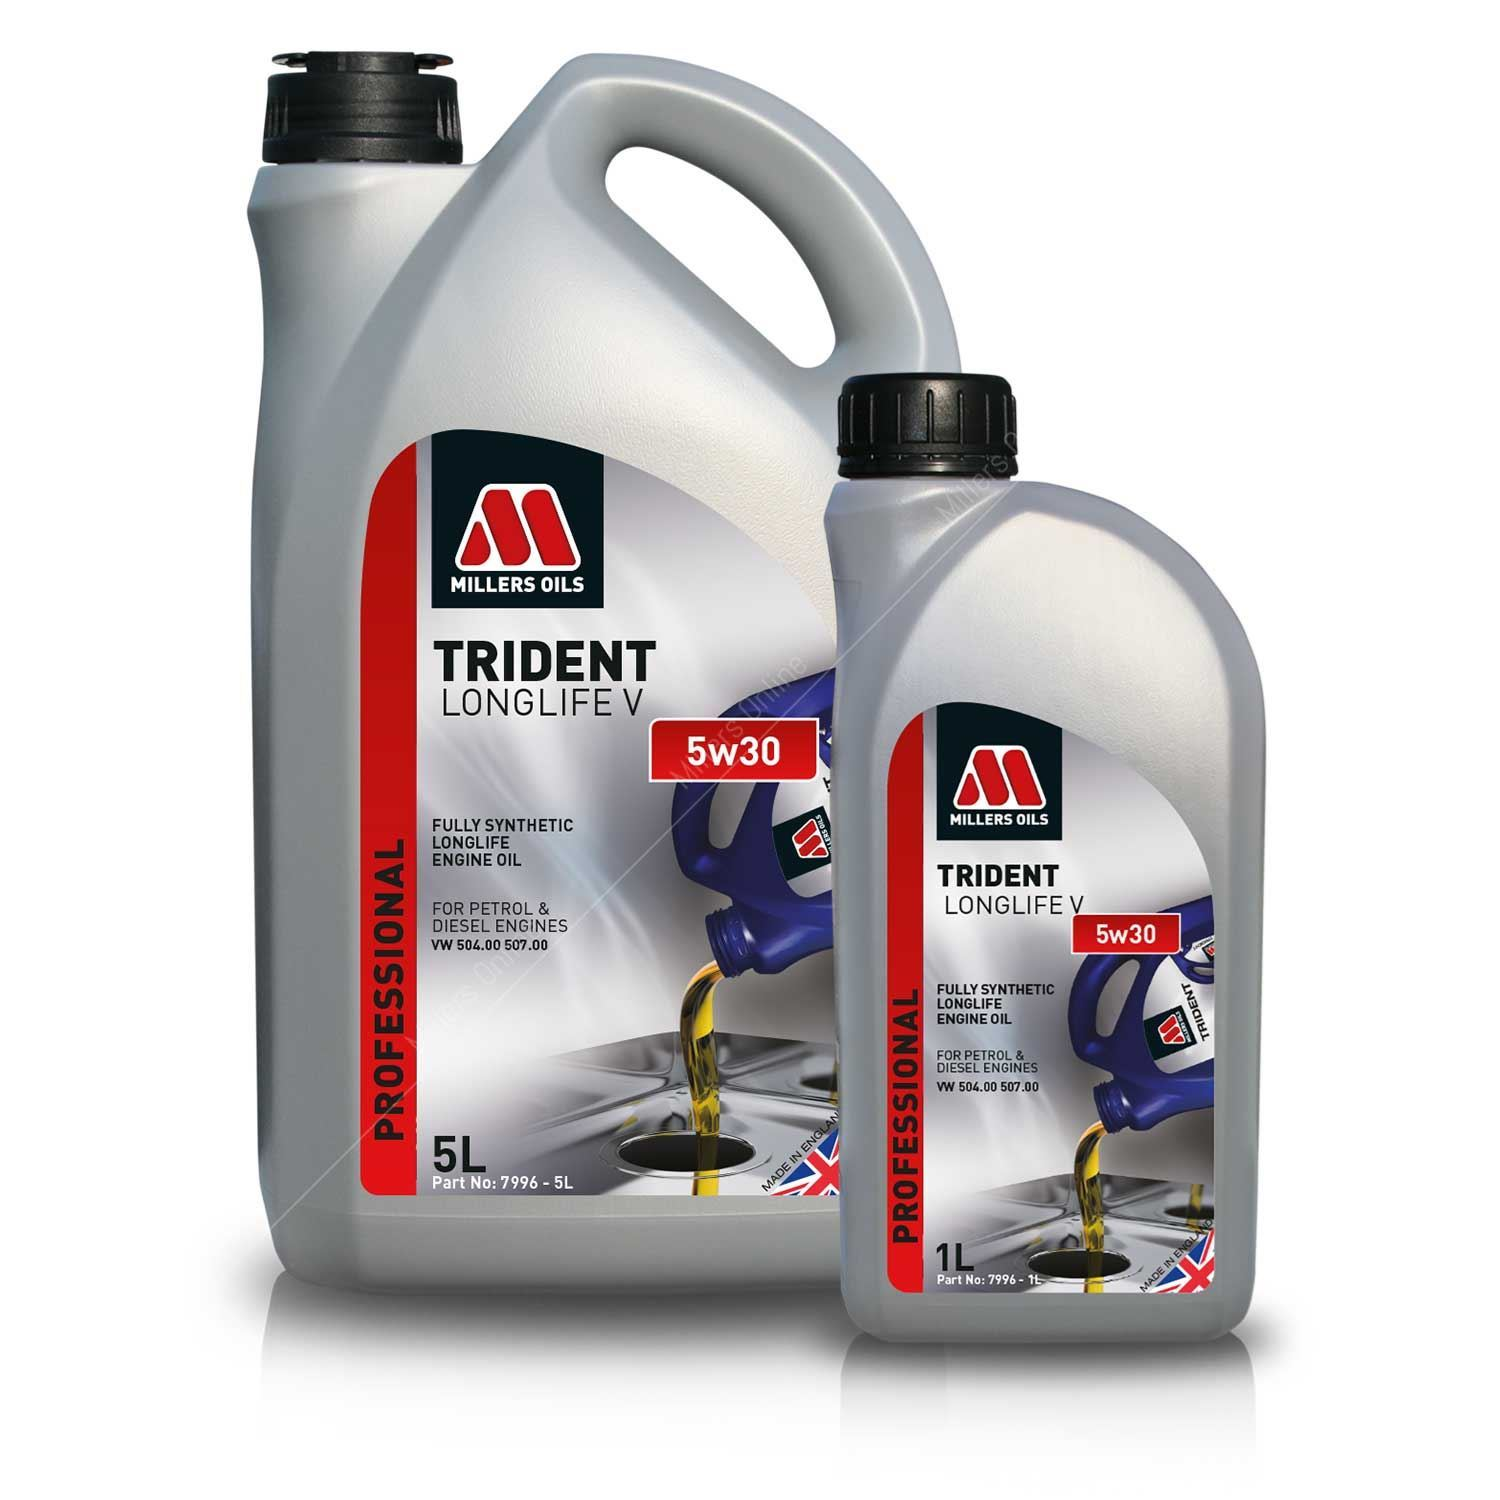 millers oils trident longlife v 5w30 fully synthetic. Black Bedroom Furniture Sets. Home Design Ideas